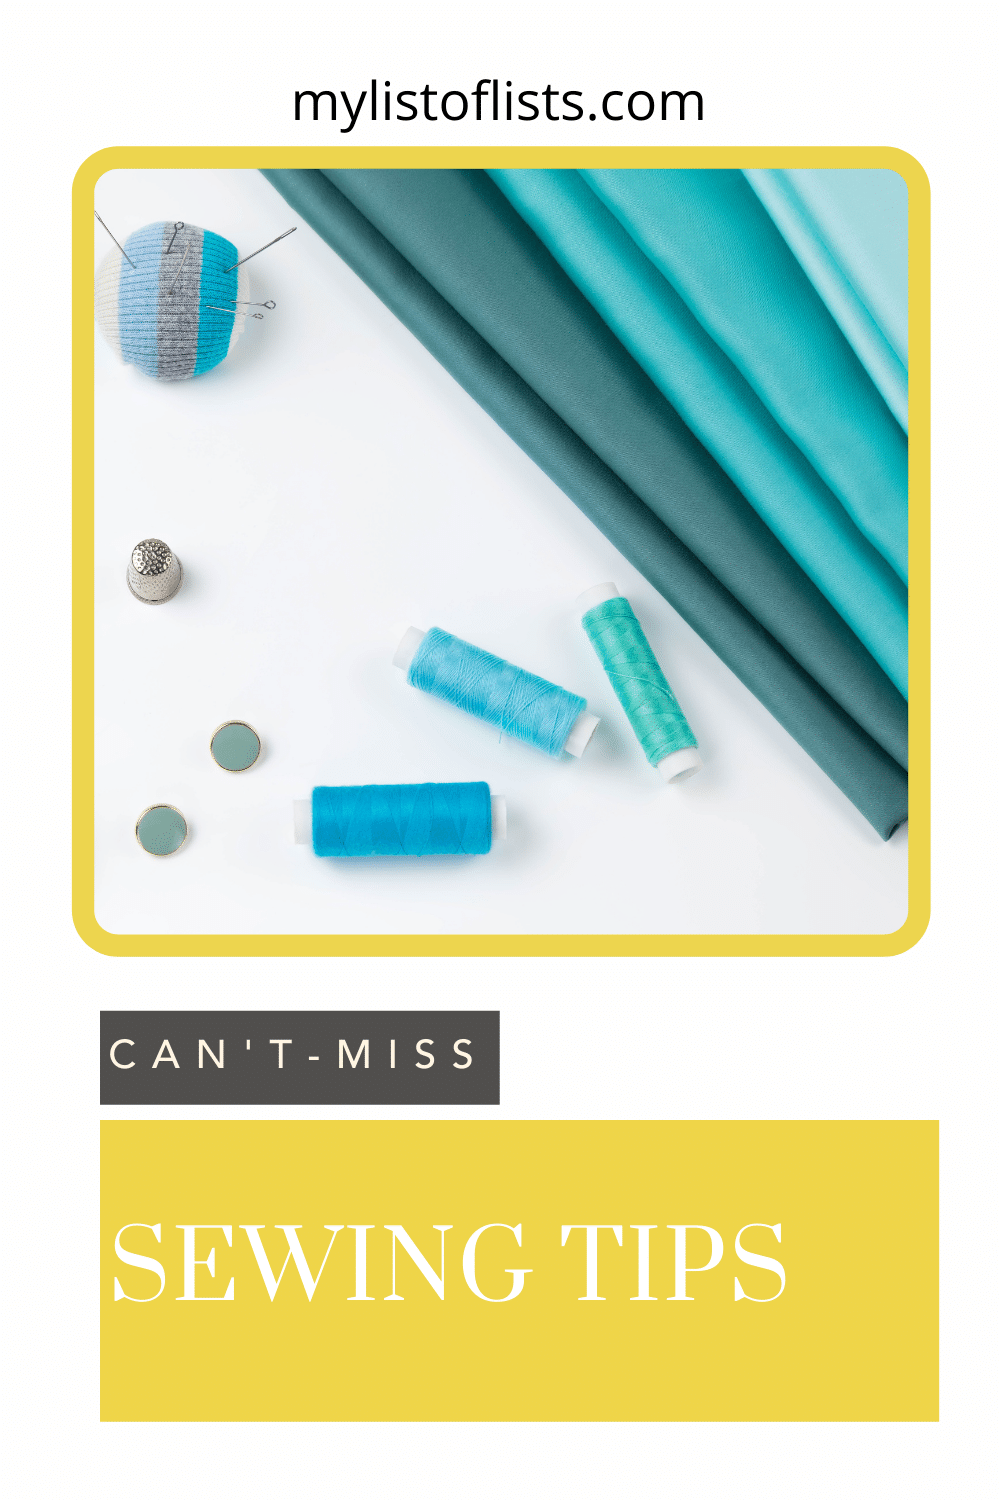 Mylistoflists.com has the best ideas to simplify your life. Find tons of tips and hacks to make everyday tasks a little bit easier. Check out these essential sewing hacks you need to know before starting on your next project!